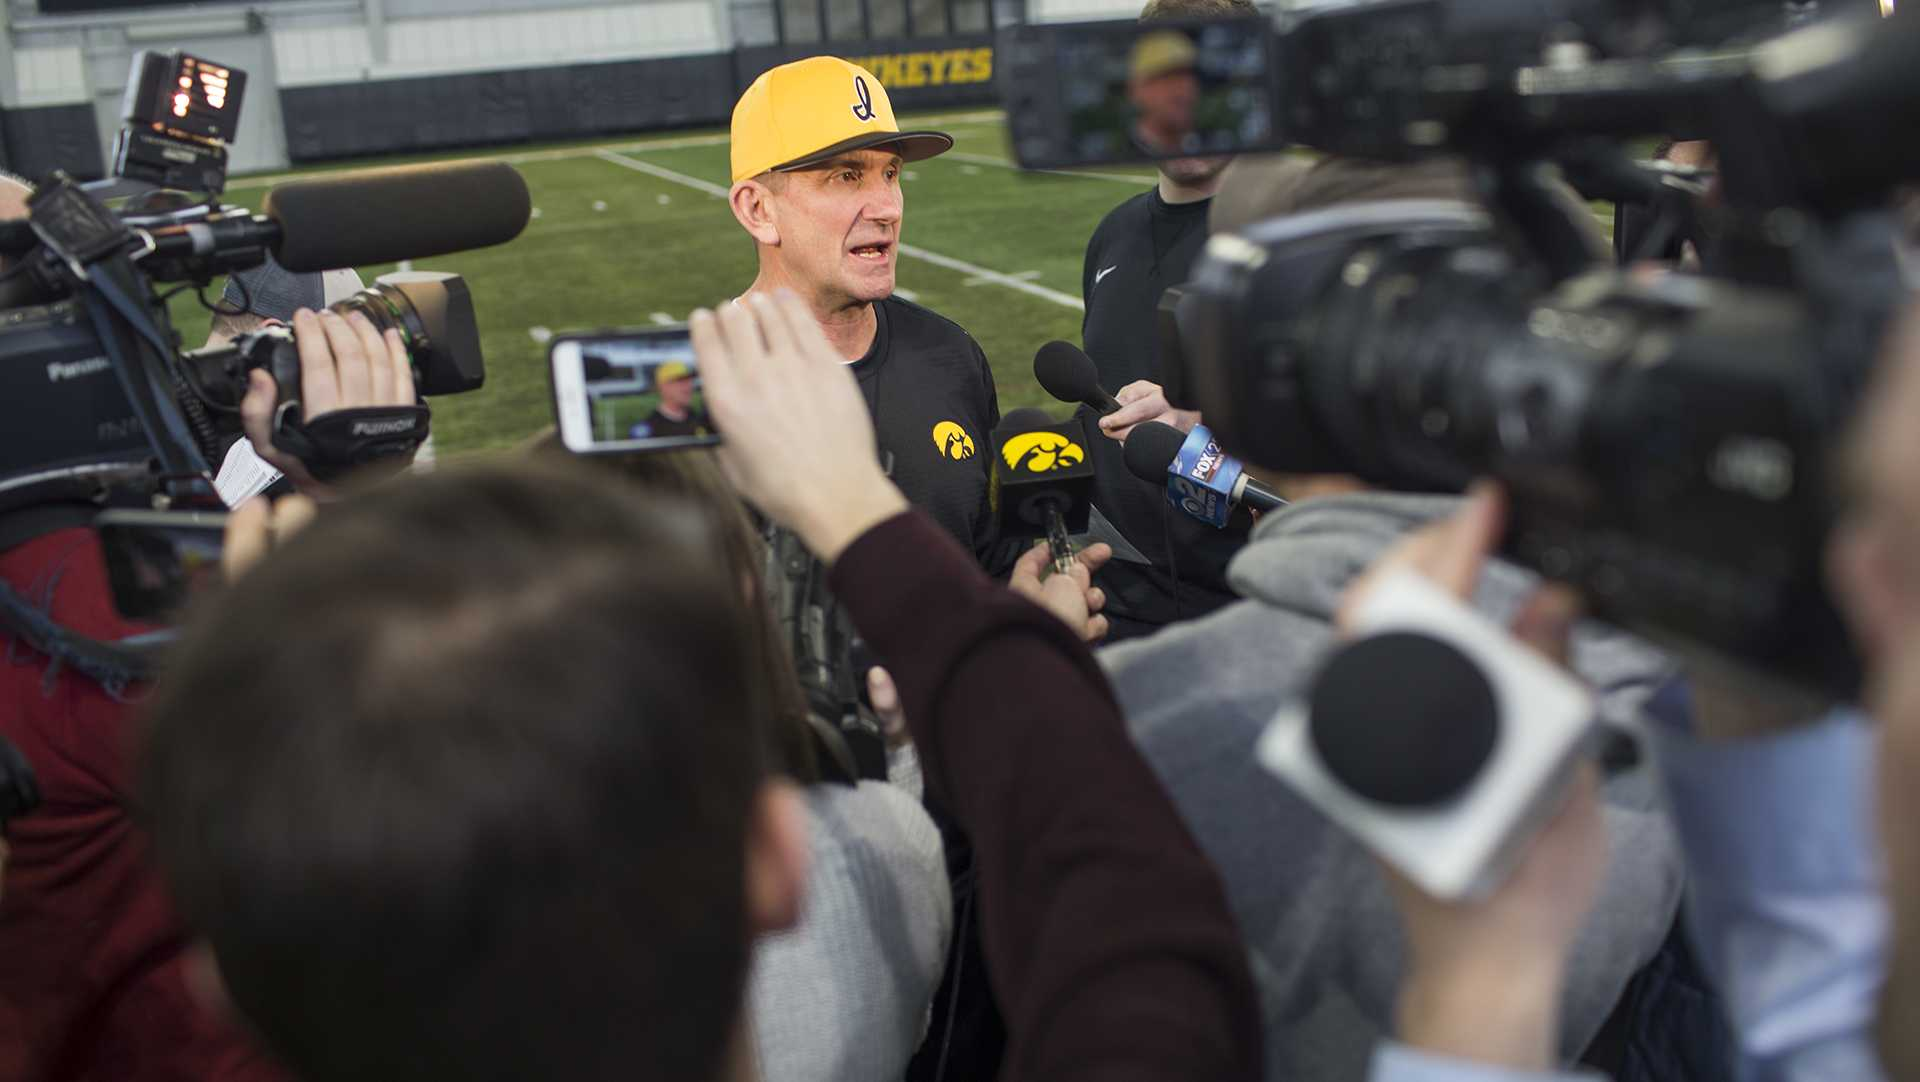 Iowa head coach Rick Heller speaks to the media during baseball media day at the Hansen Football Performance Center on Thursday, Feb. 8, 2018. The Hawkeyes begin their season Feb. 16 against Toledo in the Diamond 9 Sunshine State Classic Series in Kissimmee, Fl. (Lily Smith/The Daily Iowan)